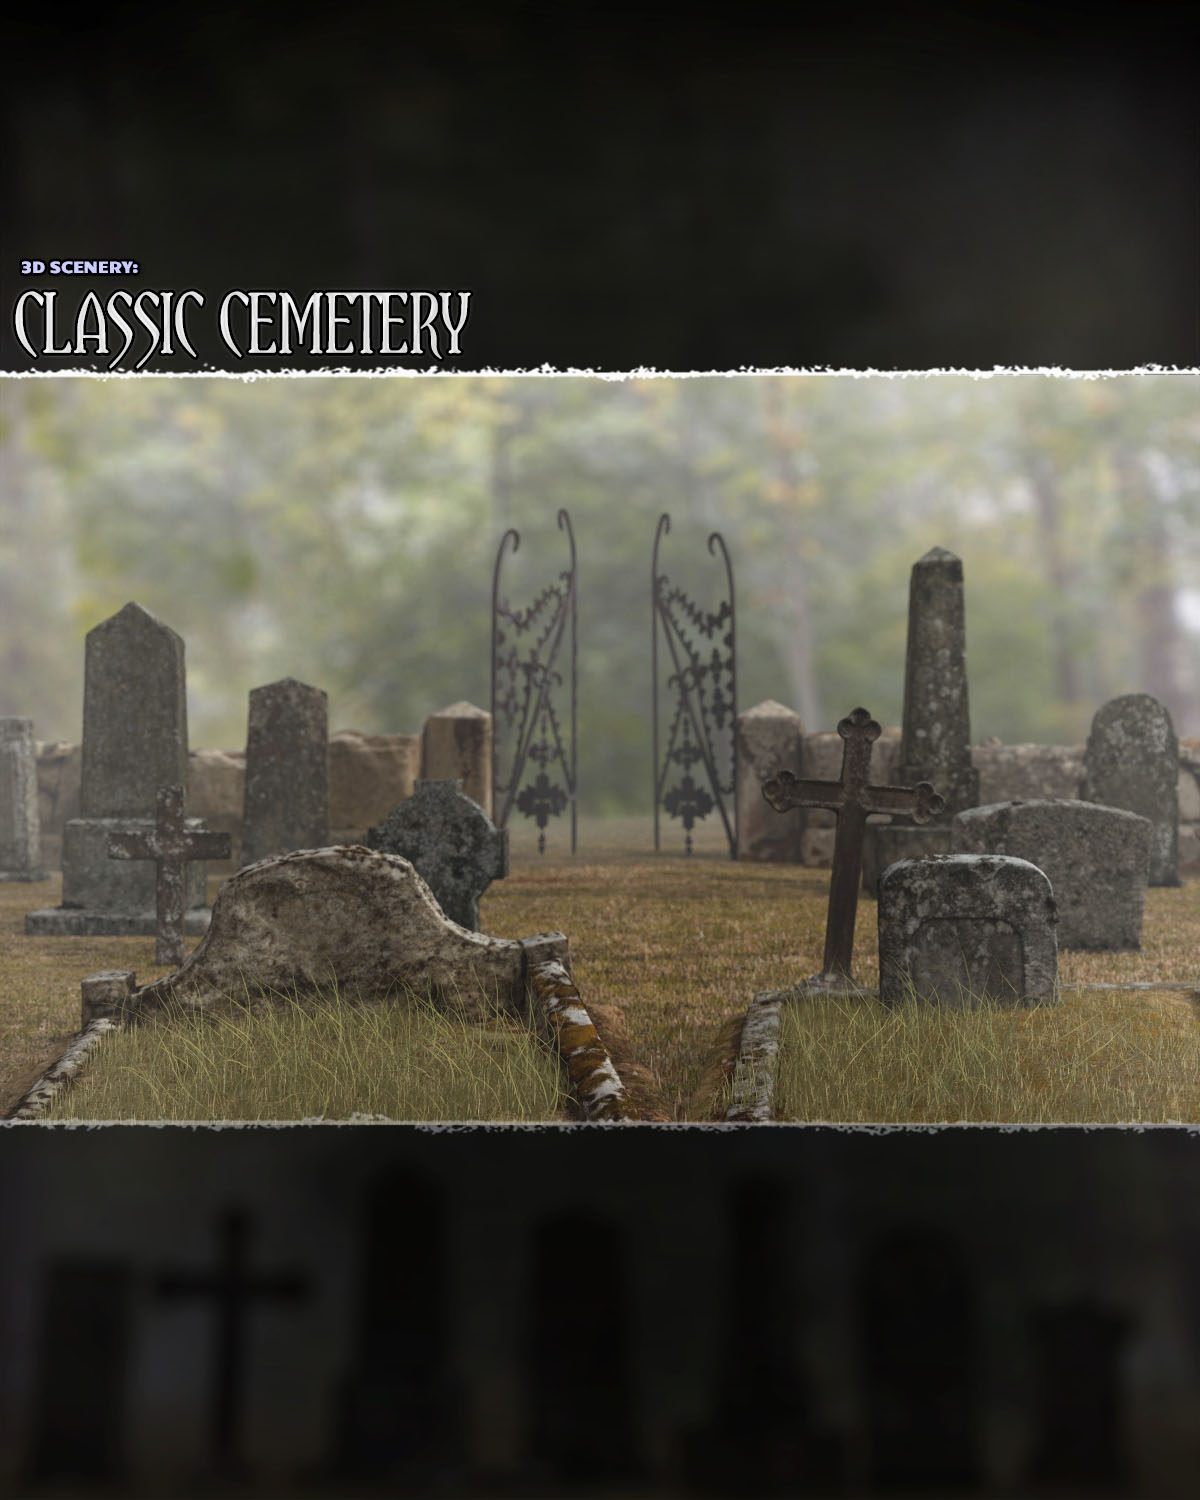 3D Scenery: Classic Cemetery  - Extended License